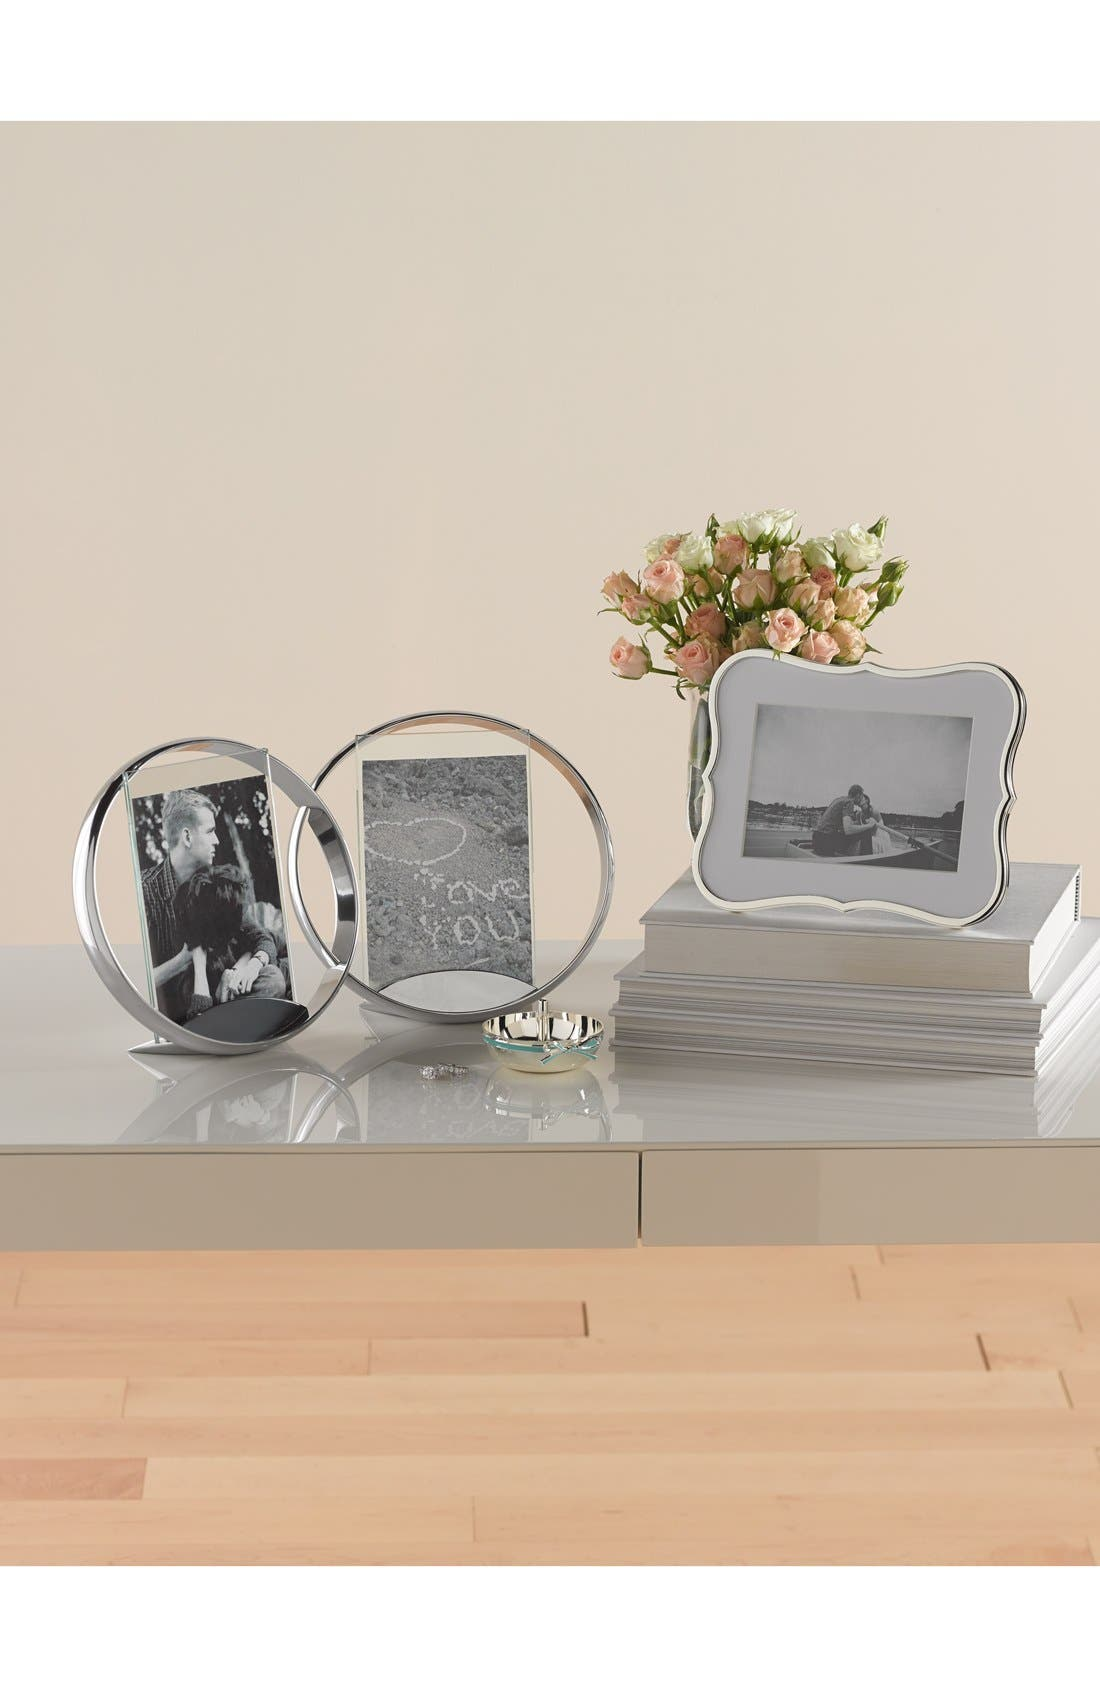 crown point picture frame,                             Alternate thumbnail 5, color,                             NO COLOR